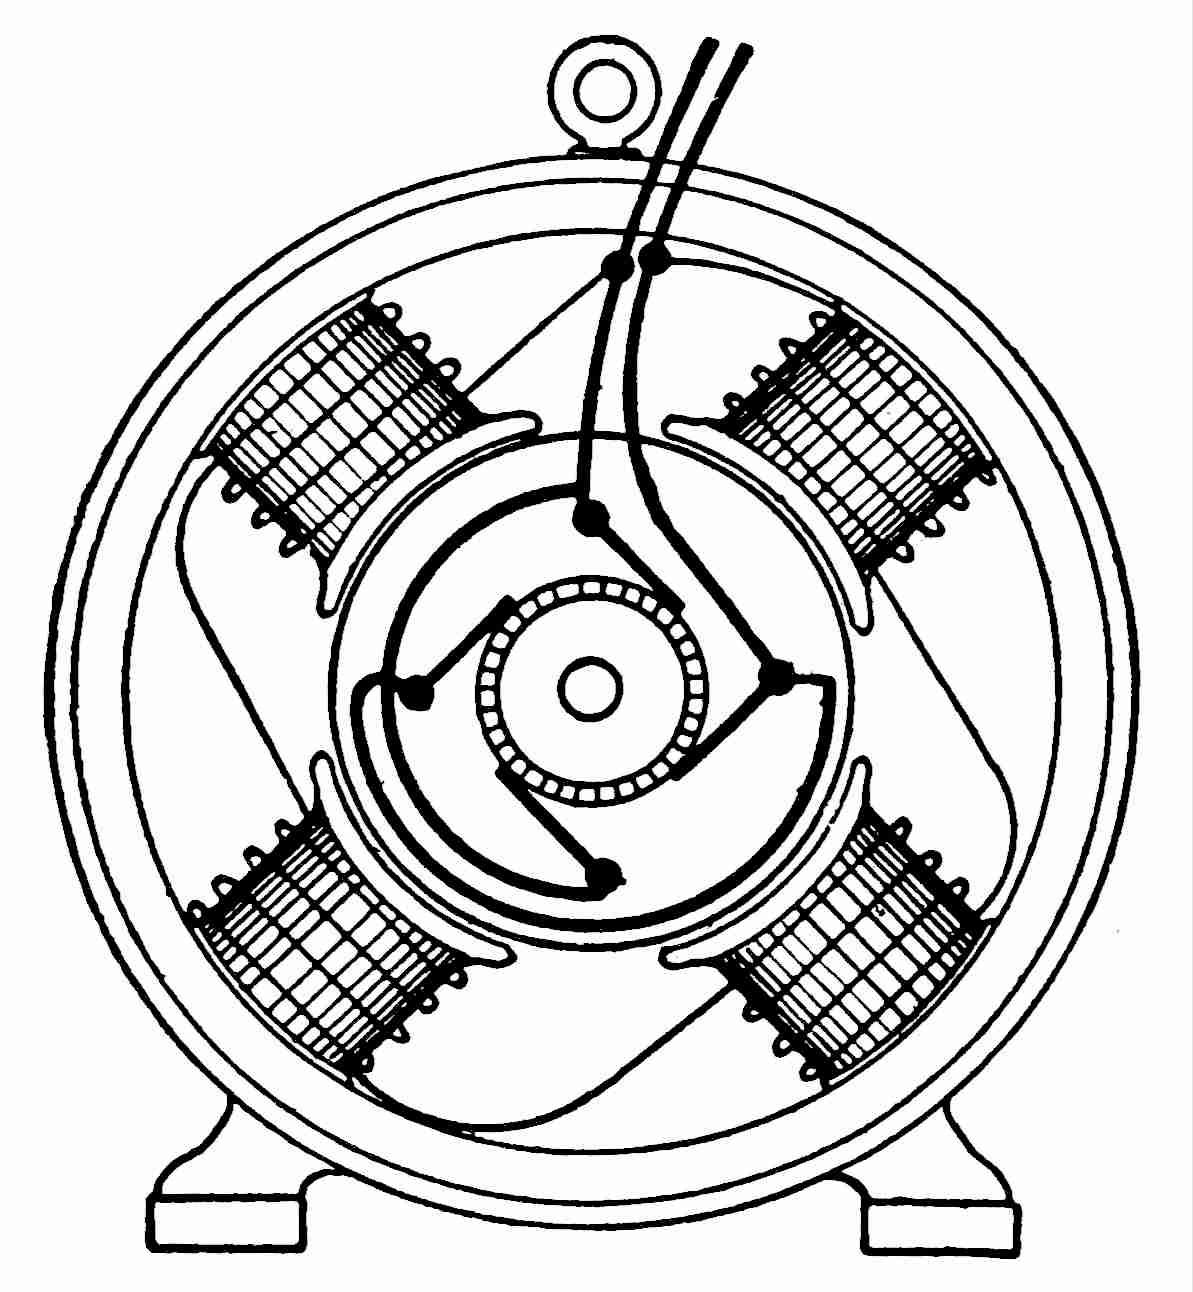 generator drawing at getdrawings free for personal use Diagram How a Substation Backup Generator 1193x1292 filemodern consequent pole four field shunt wound dc generator